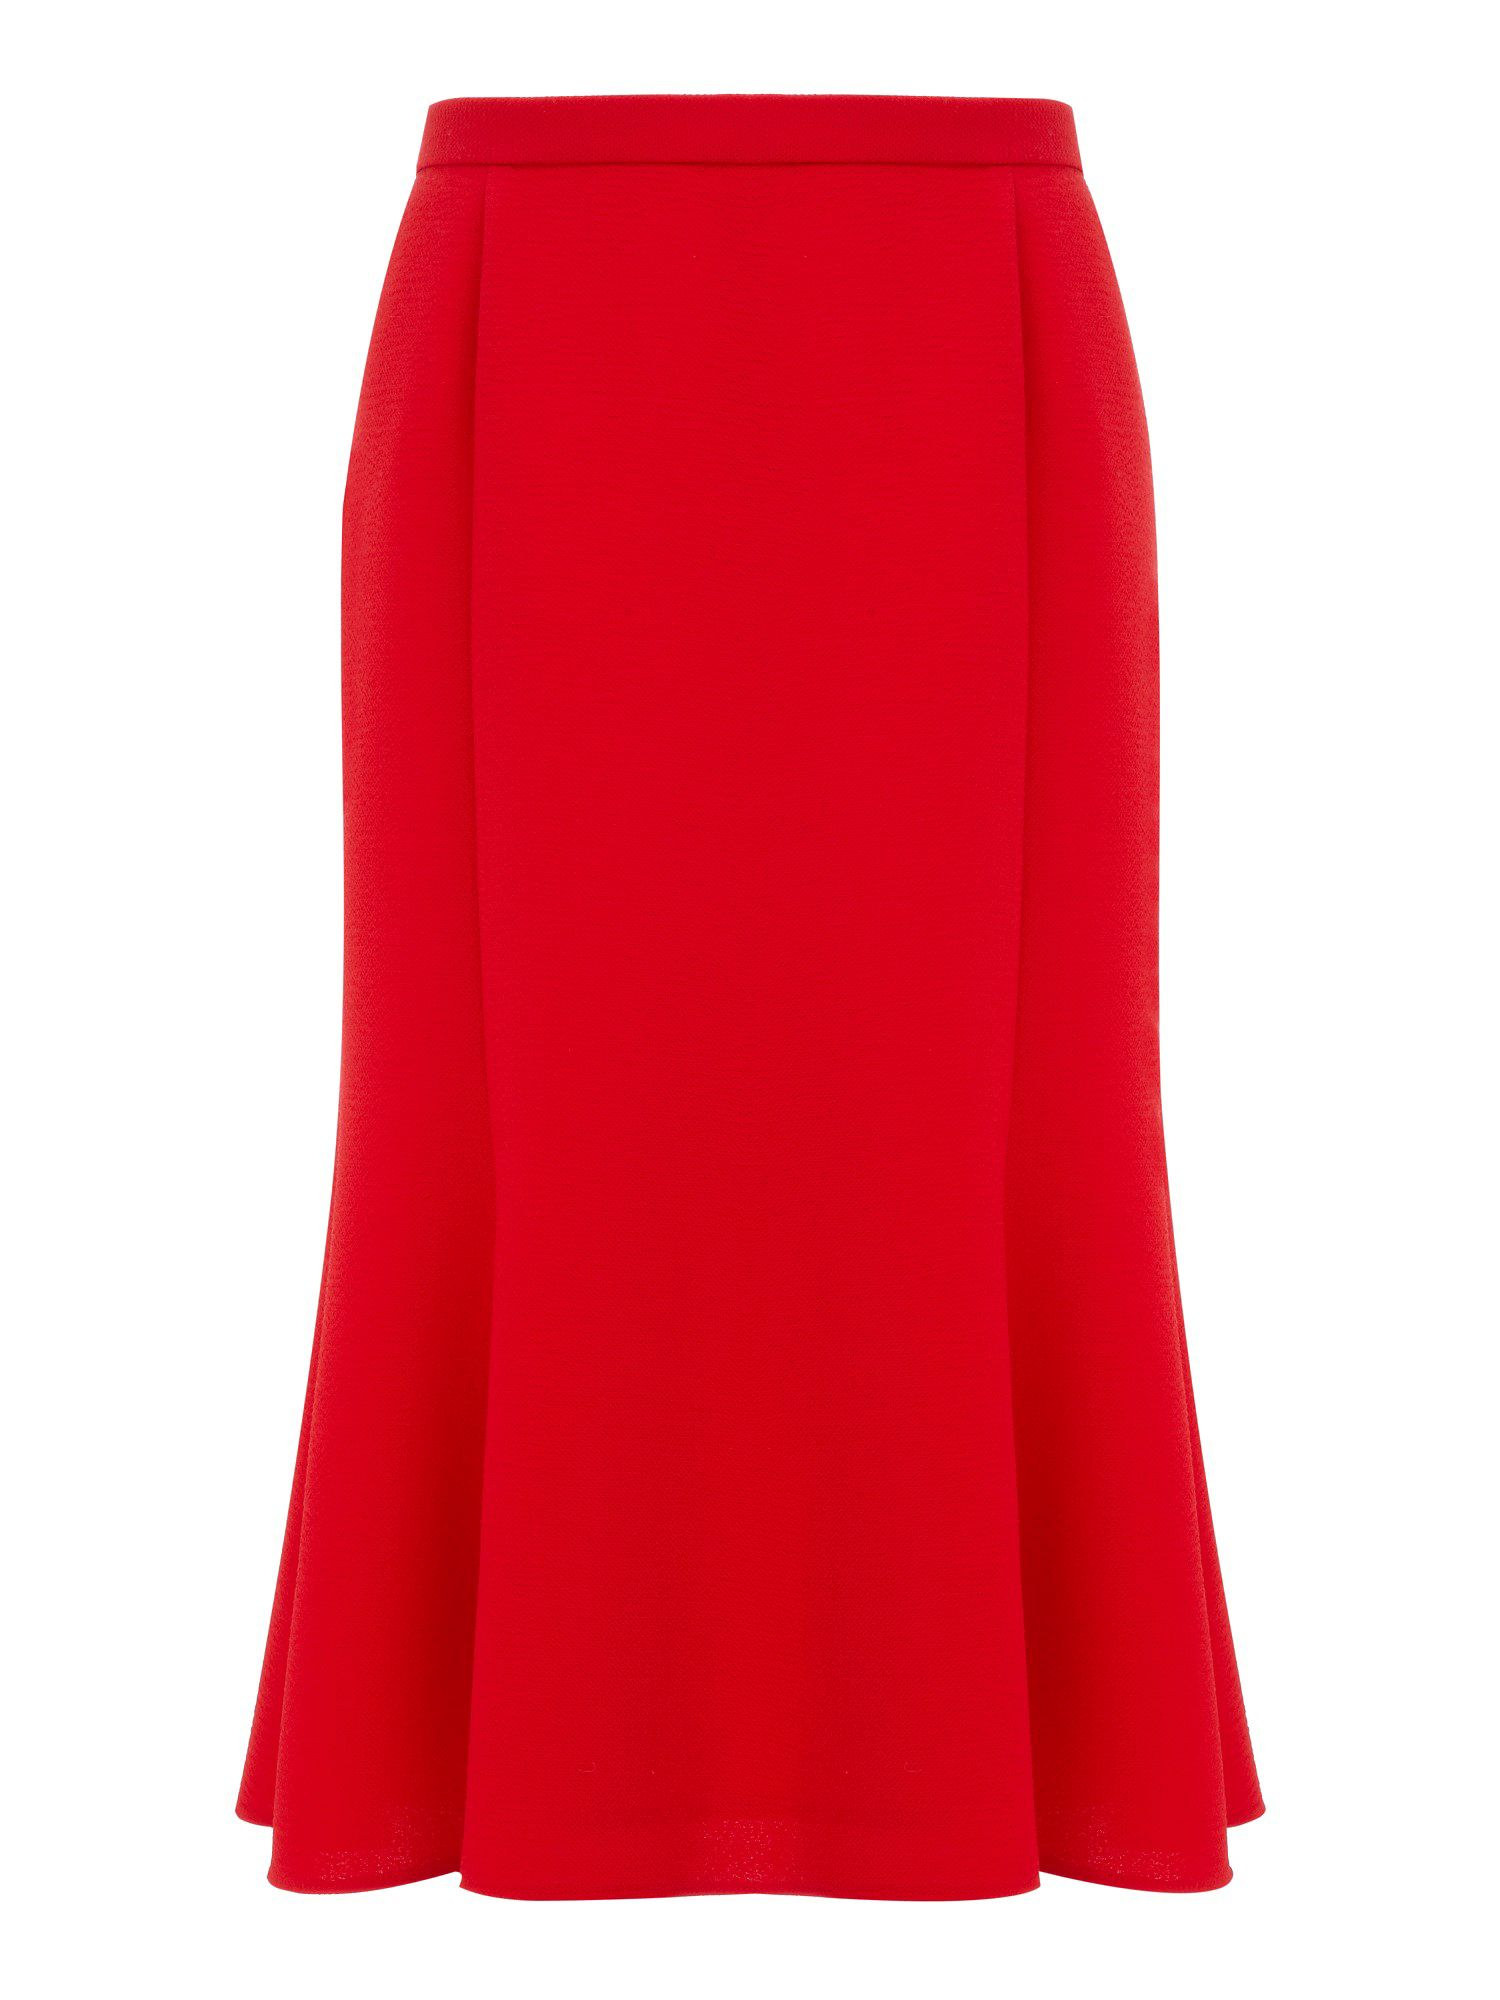 Rouge crepe skirt